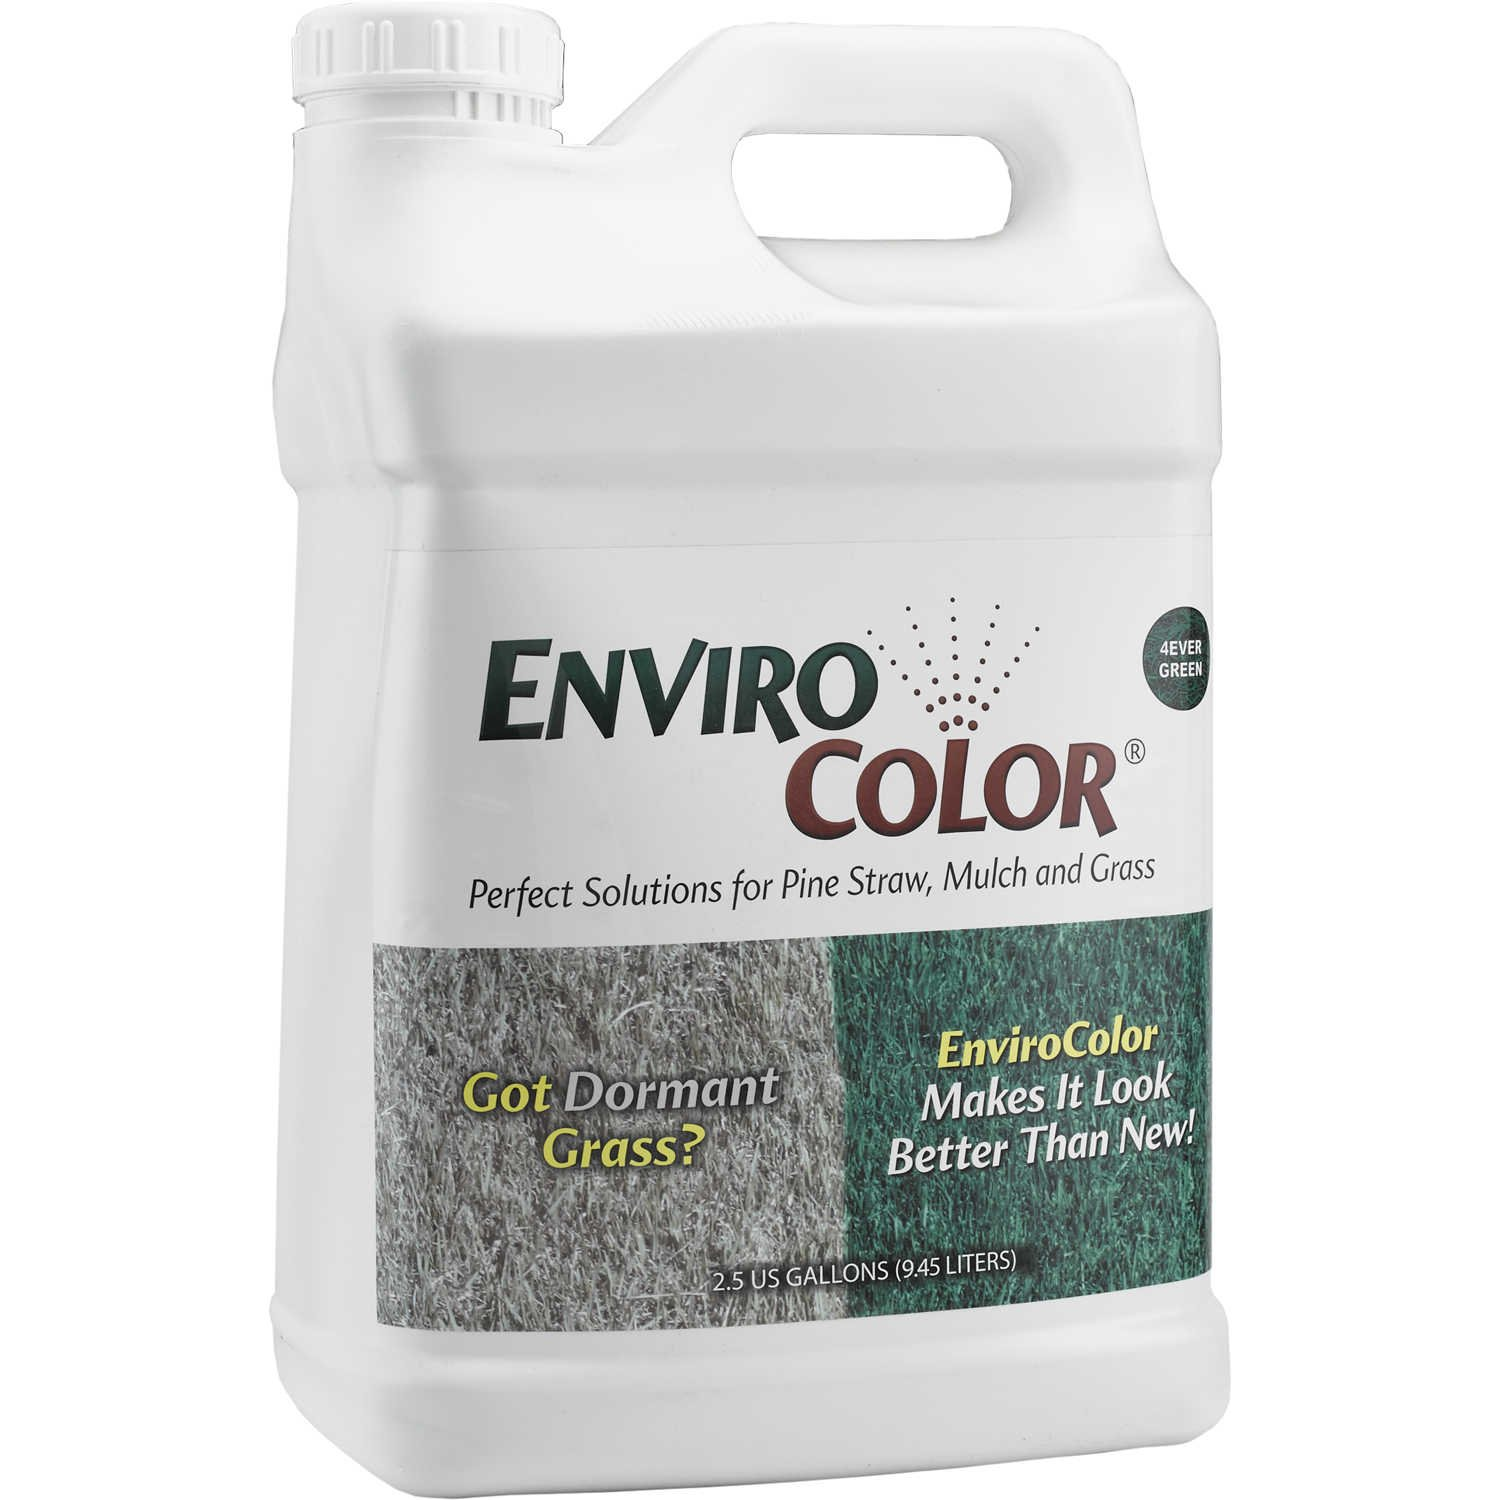 10,000 Sq. Ft 4Ever Green Grass and Turf Paint - Have a green lawn all winter long!